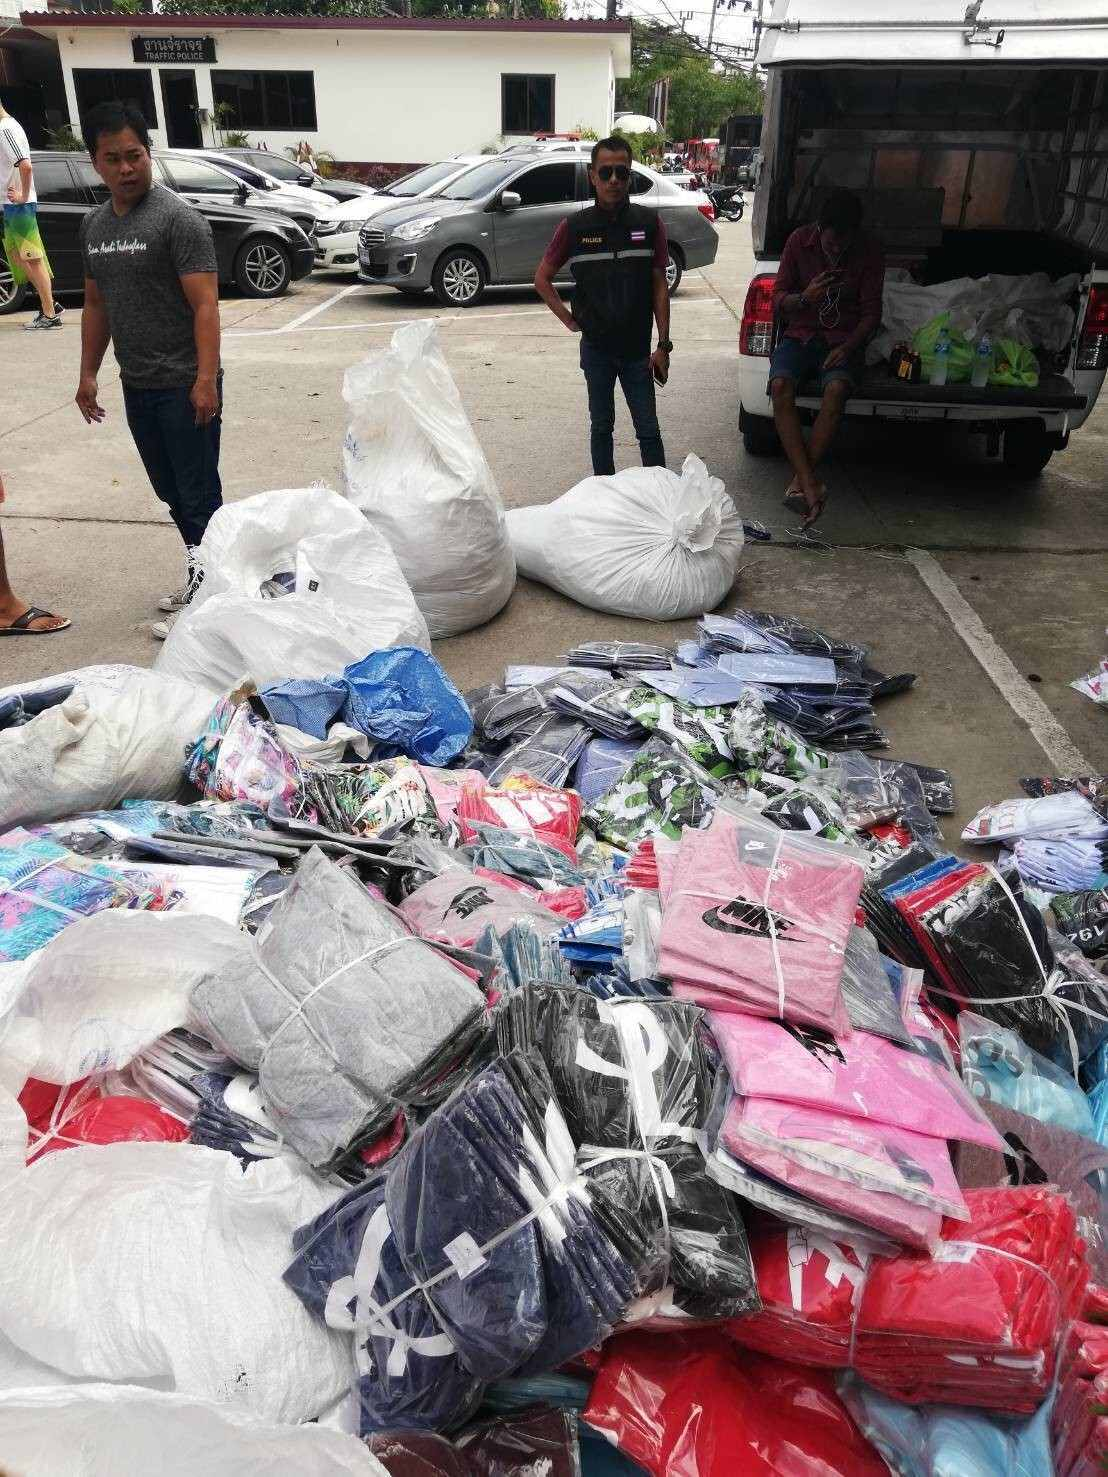 More fake goods seized in Patong | The Thaiger